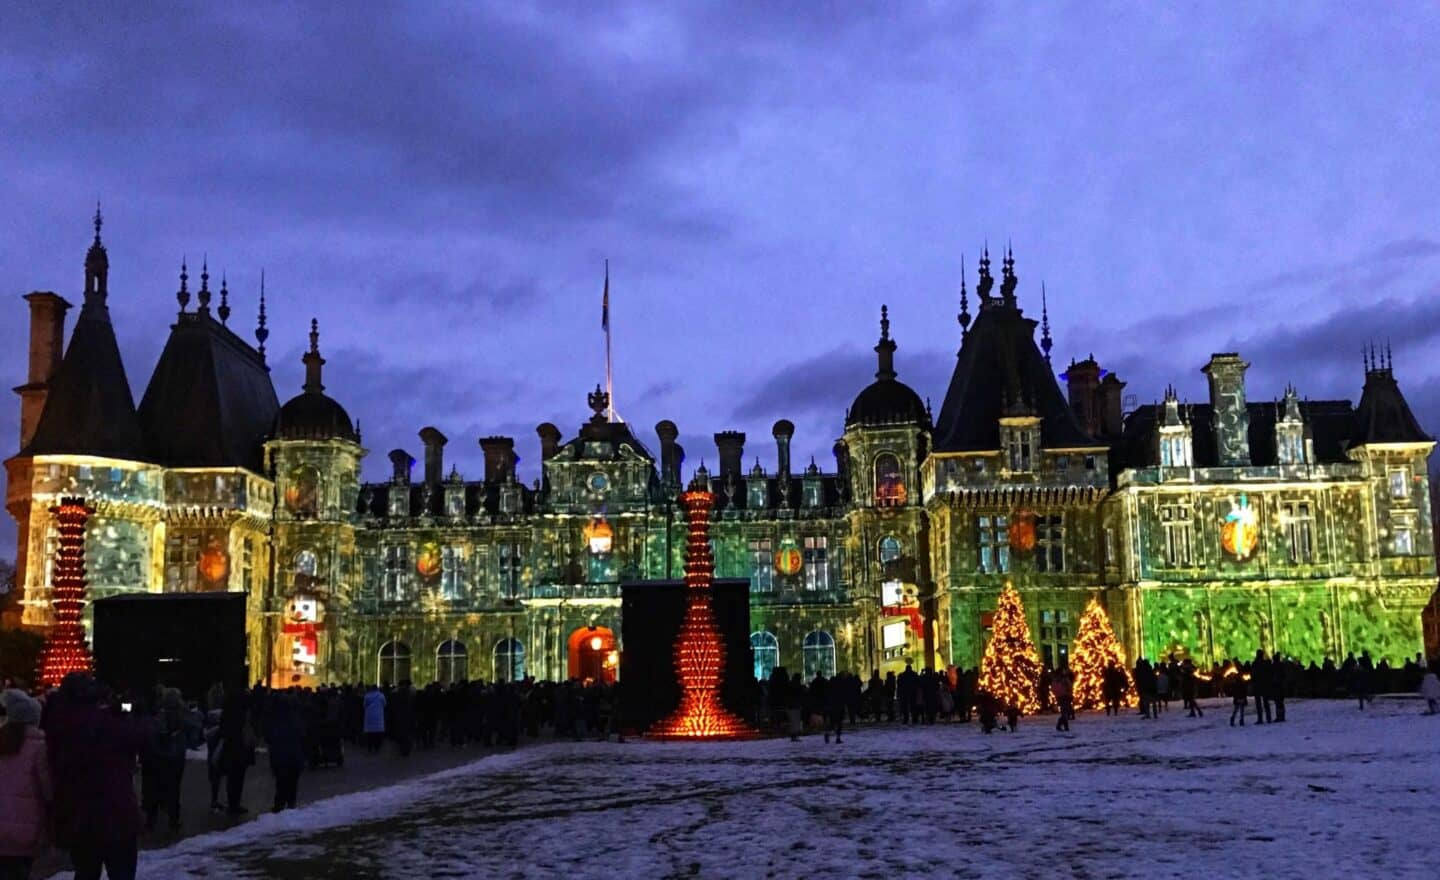 Waddesdon Manor with Christmas lights projected